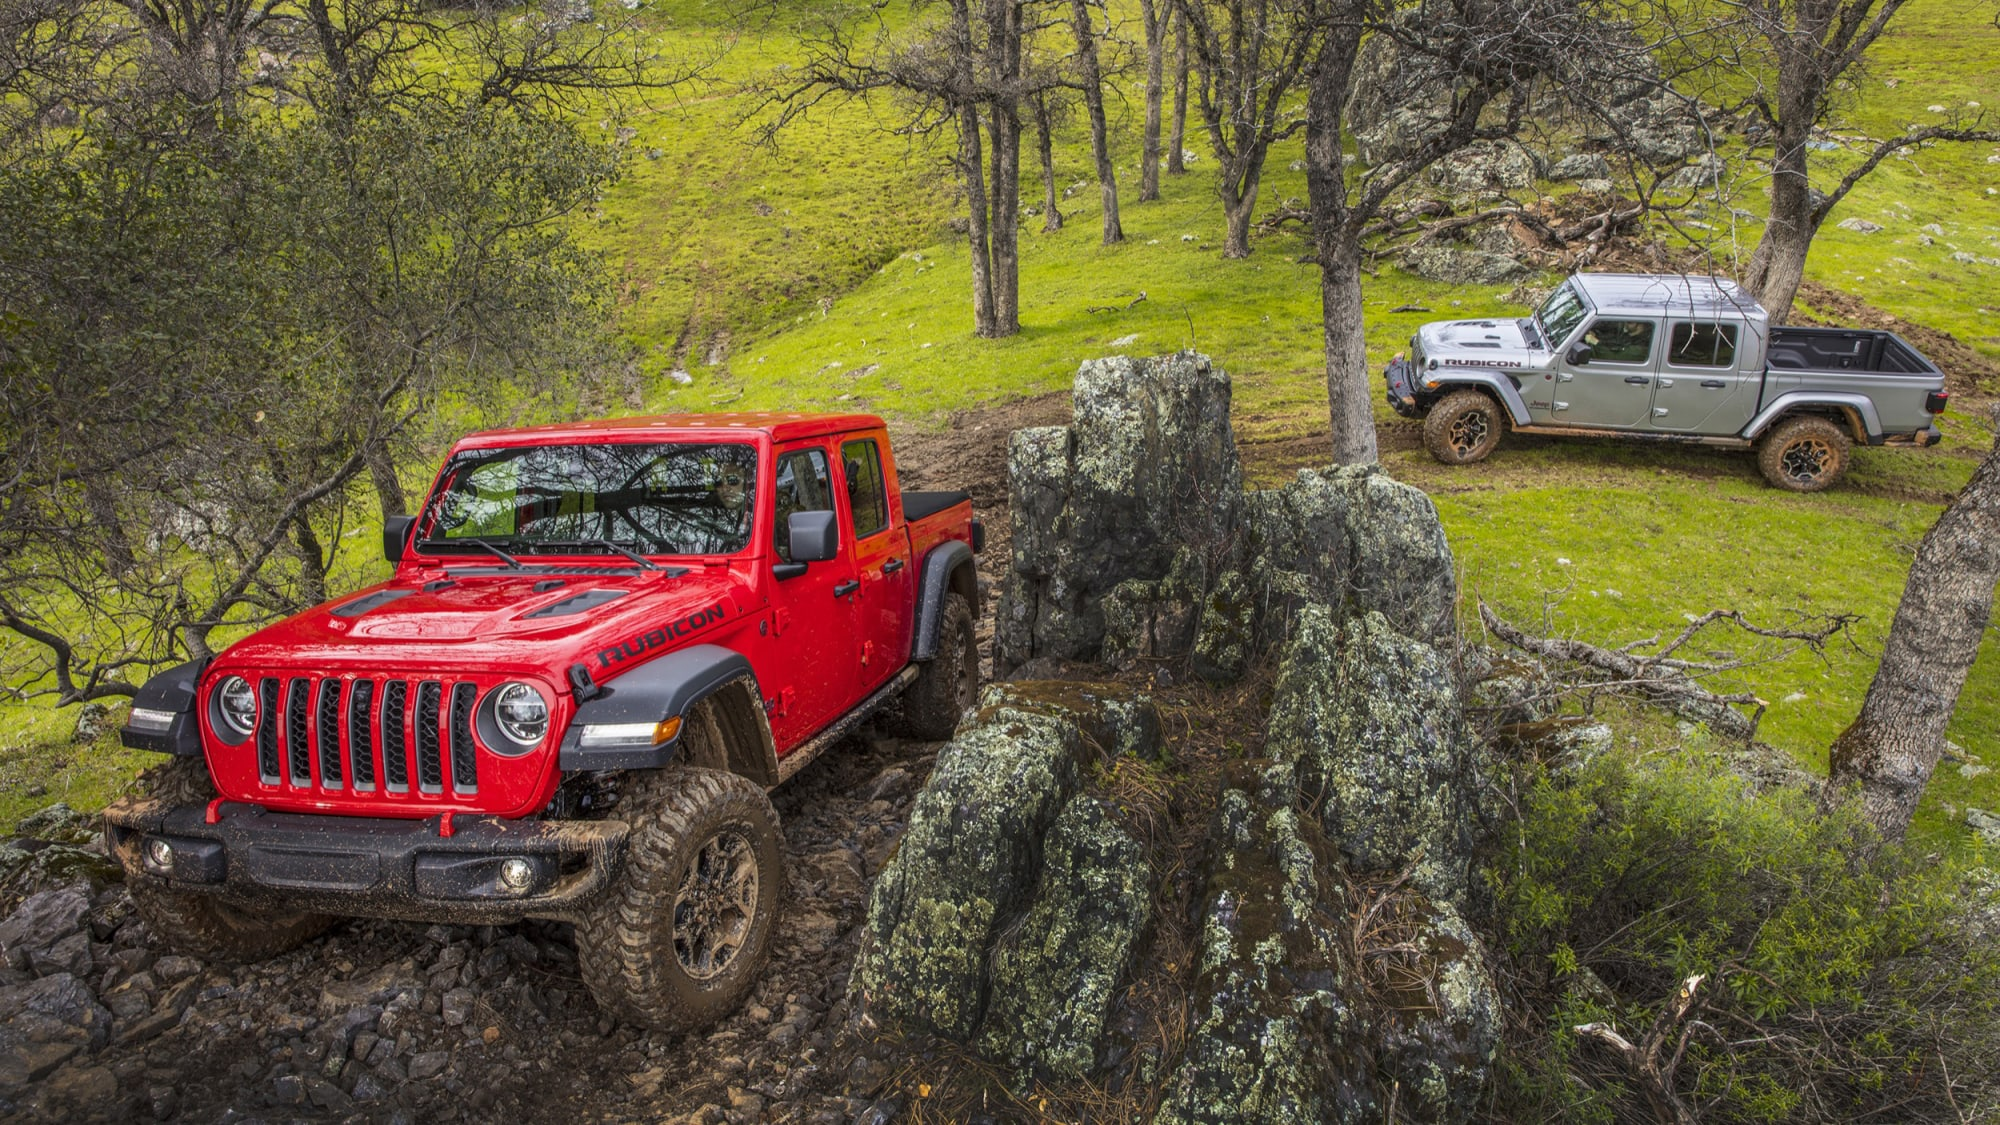 2020 jeep gladiator reviews   price, specs, features and